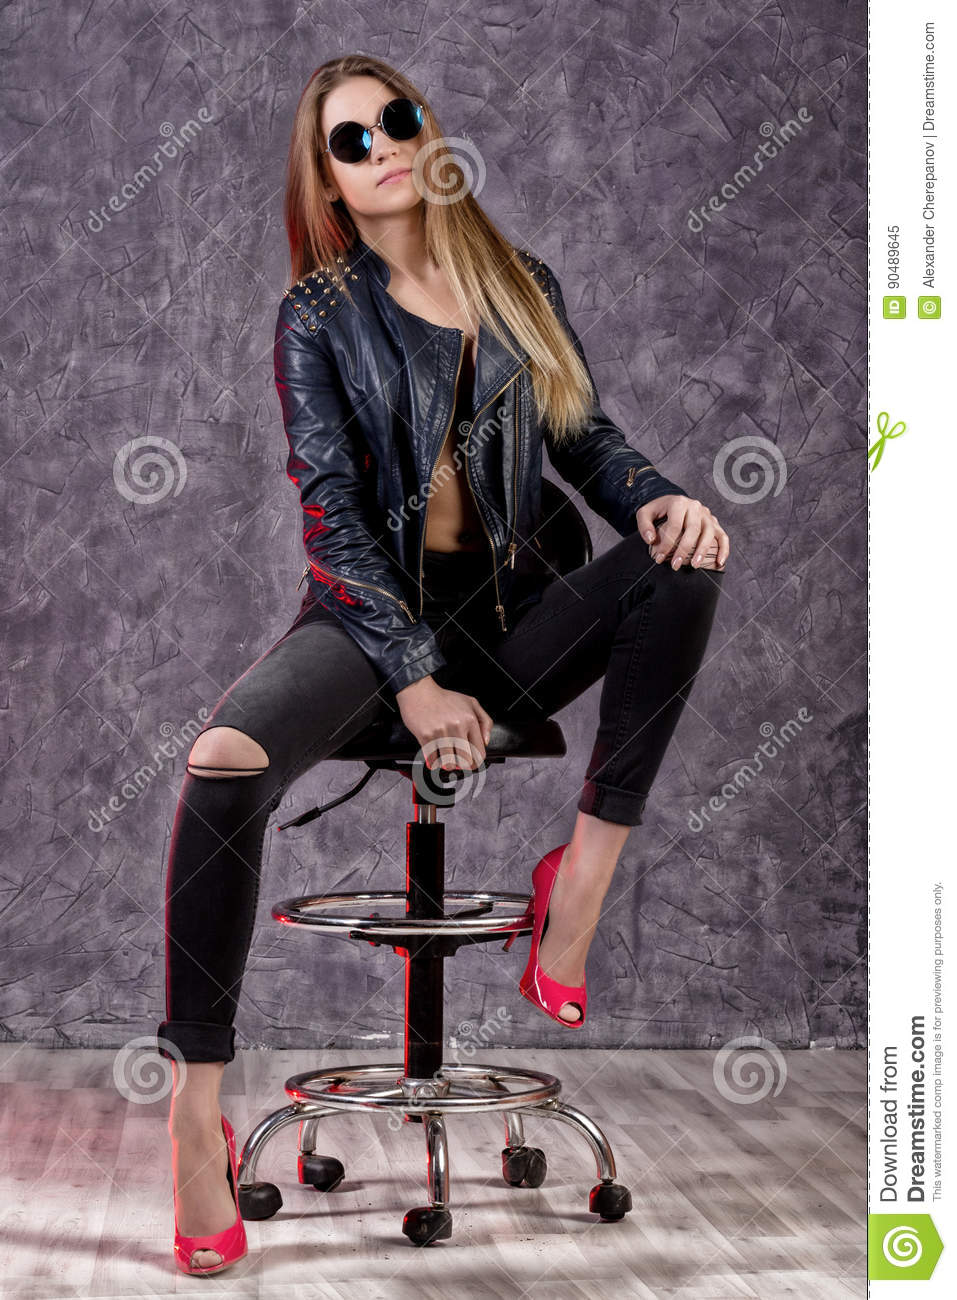 Beautiful urban trendy girl in black leather jacket and jeans posing on a high chair